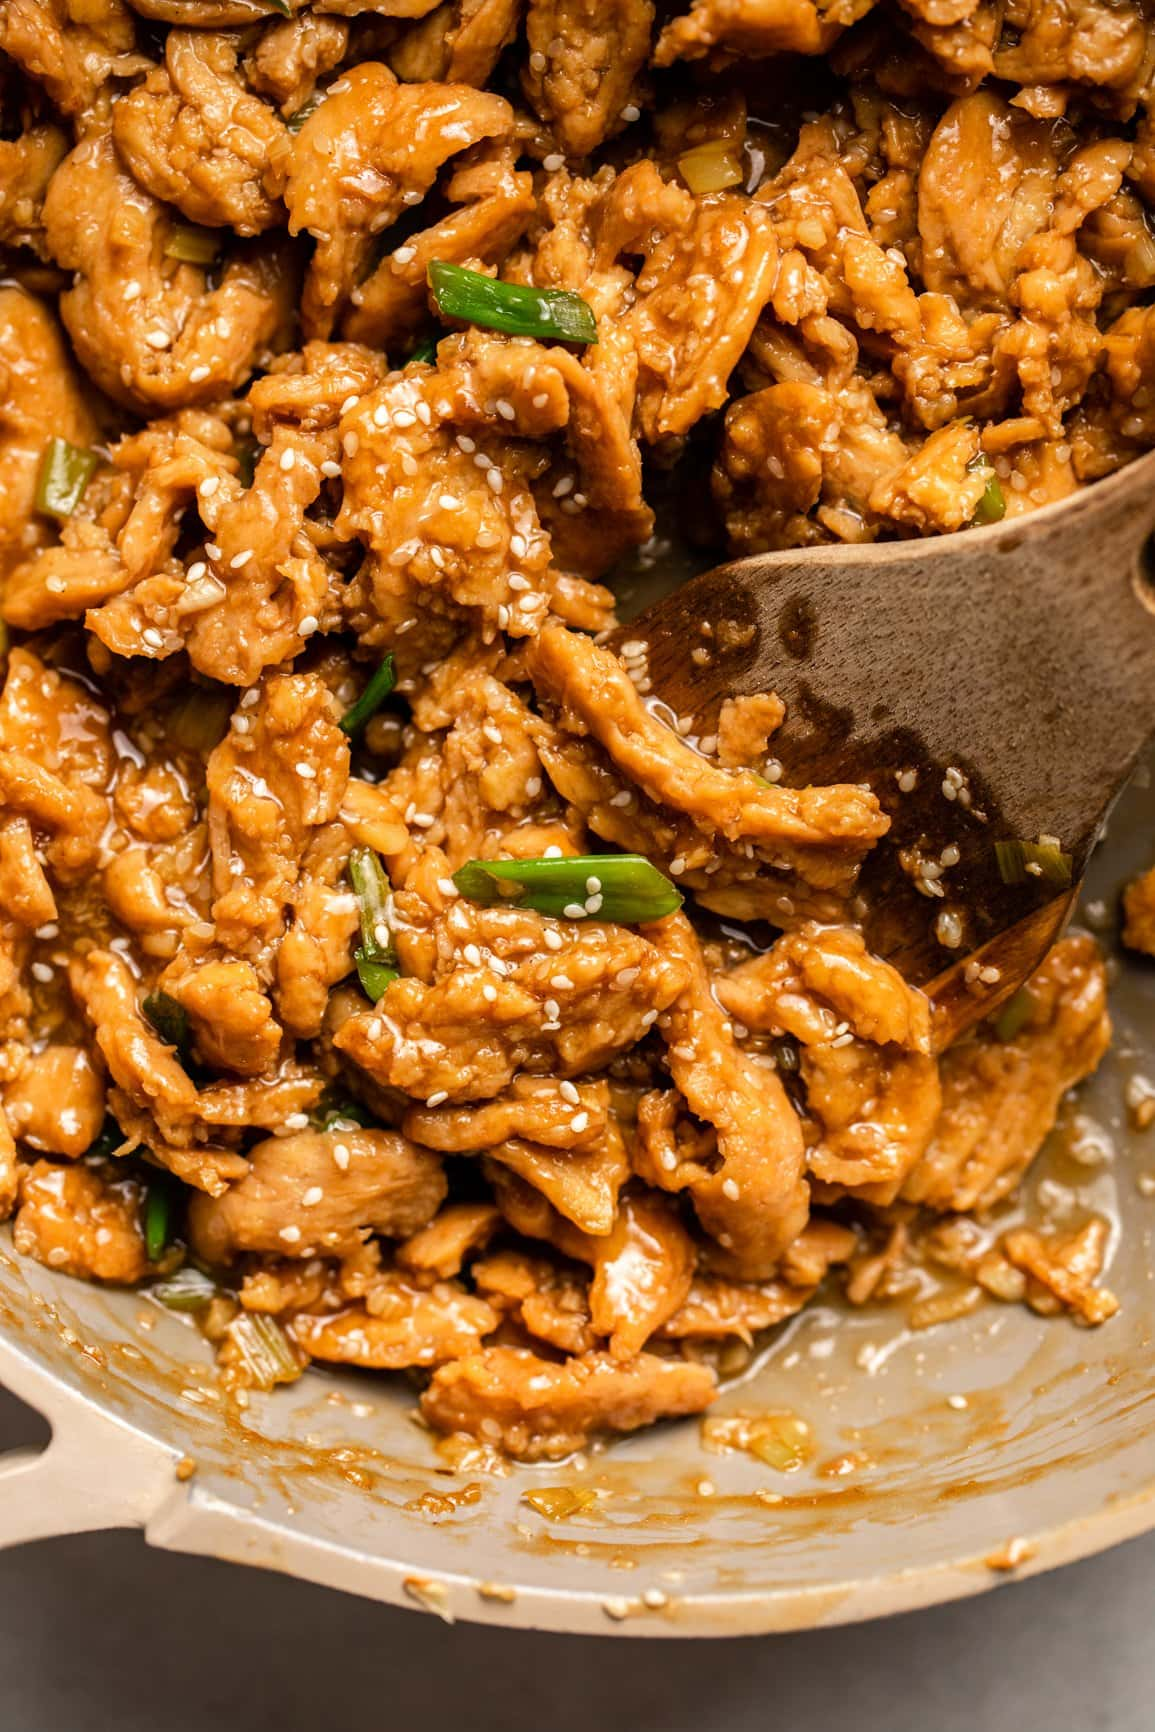 cooked vegan sesame chicken in tan skillet topped with green onions